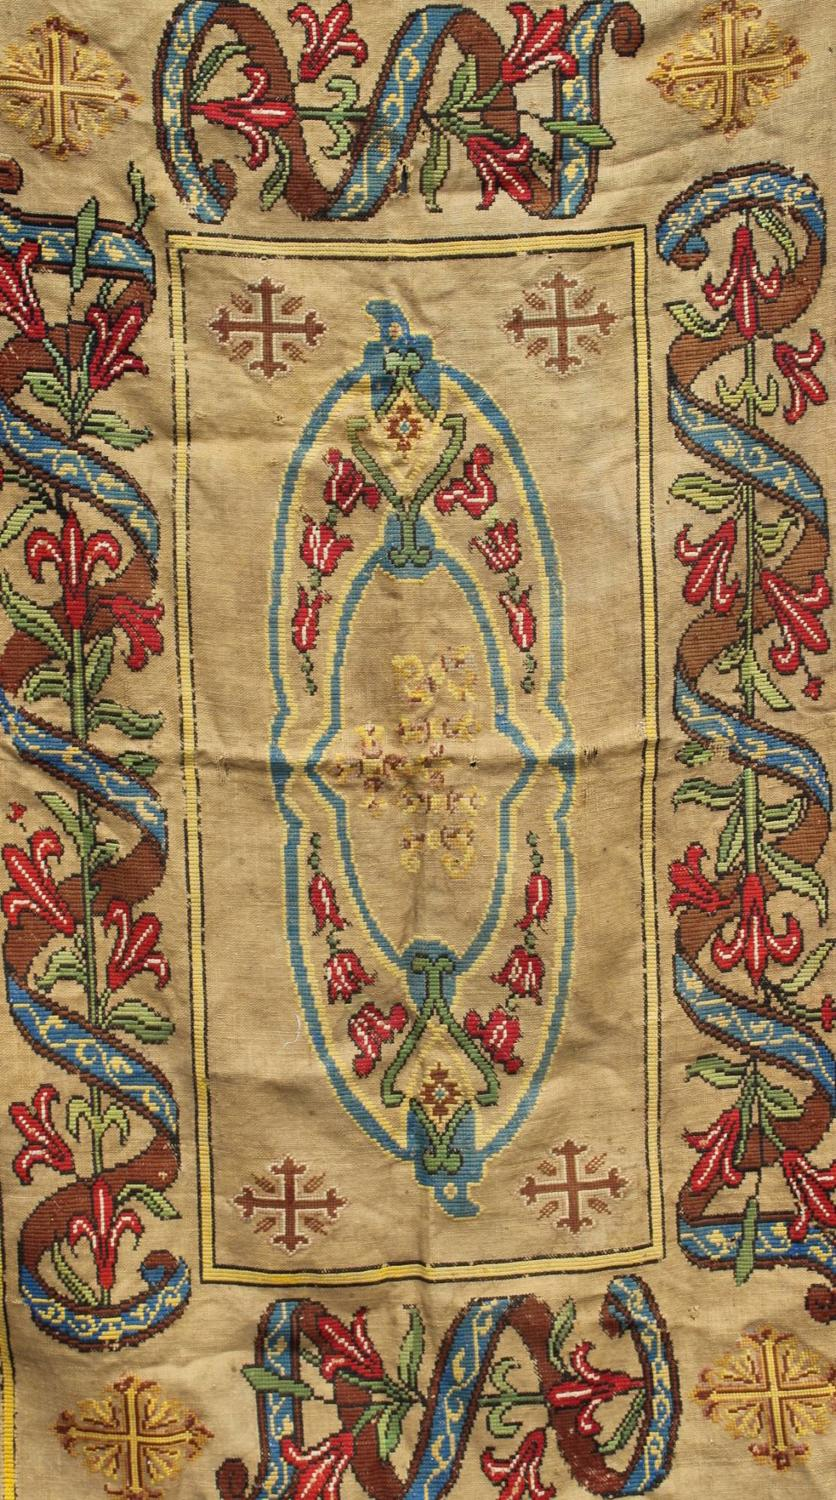 A French 19th Century Hand Emroidered Altar Cloth